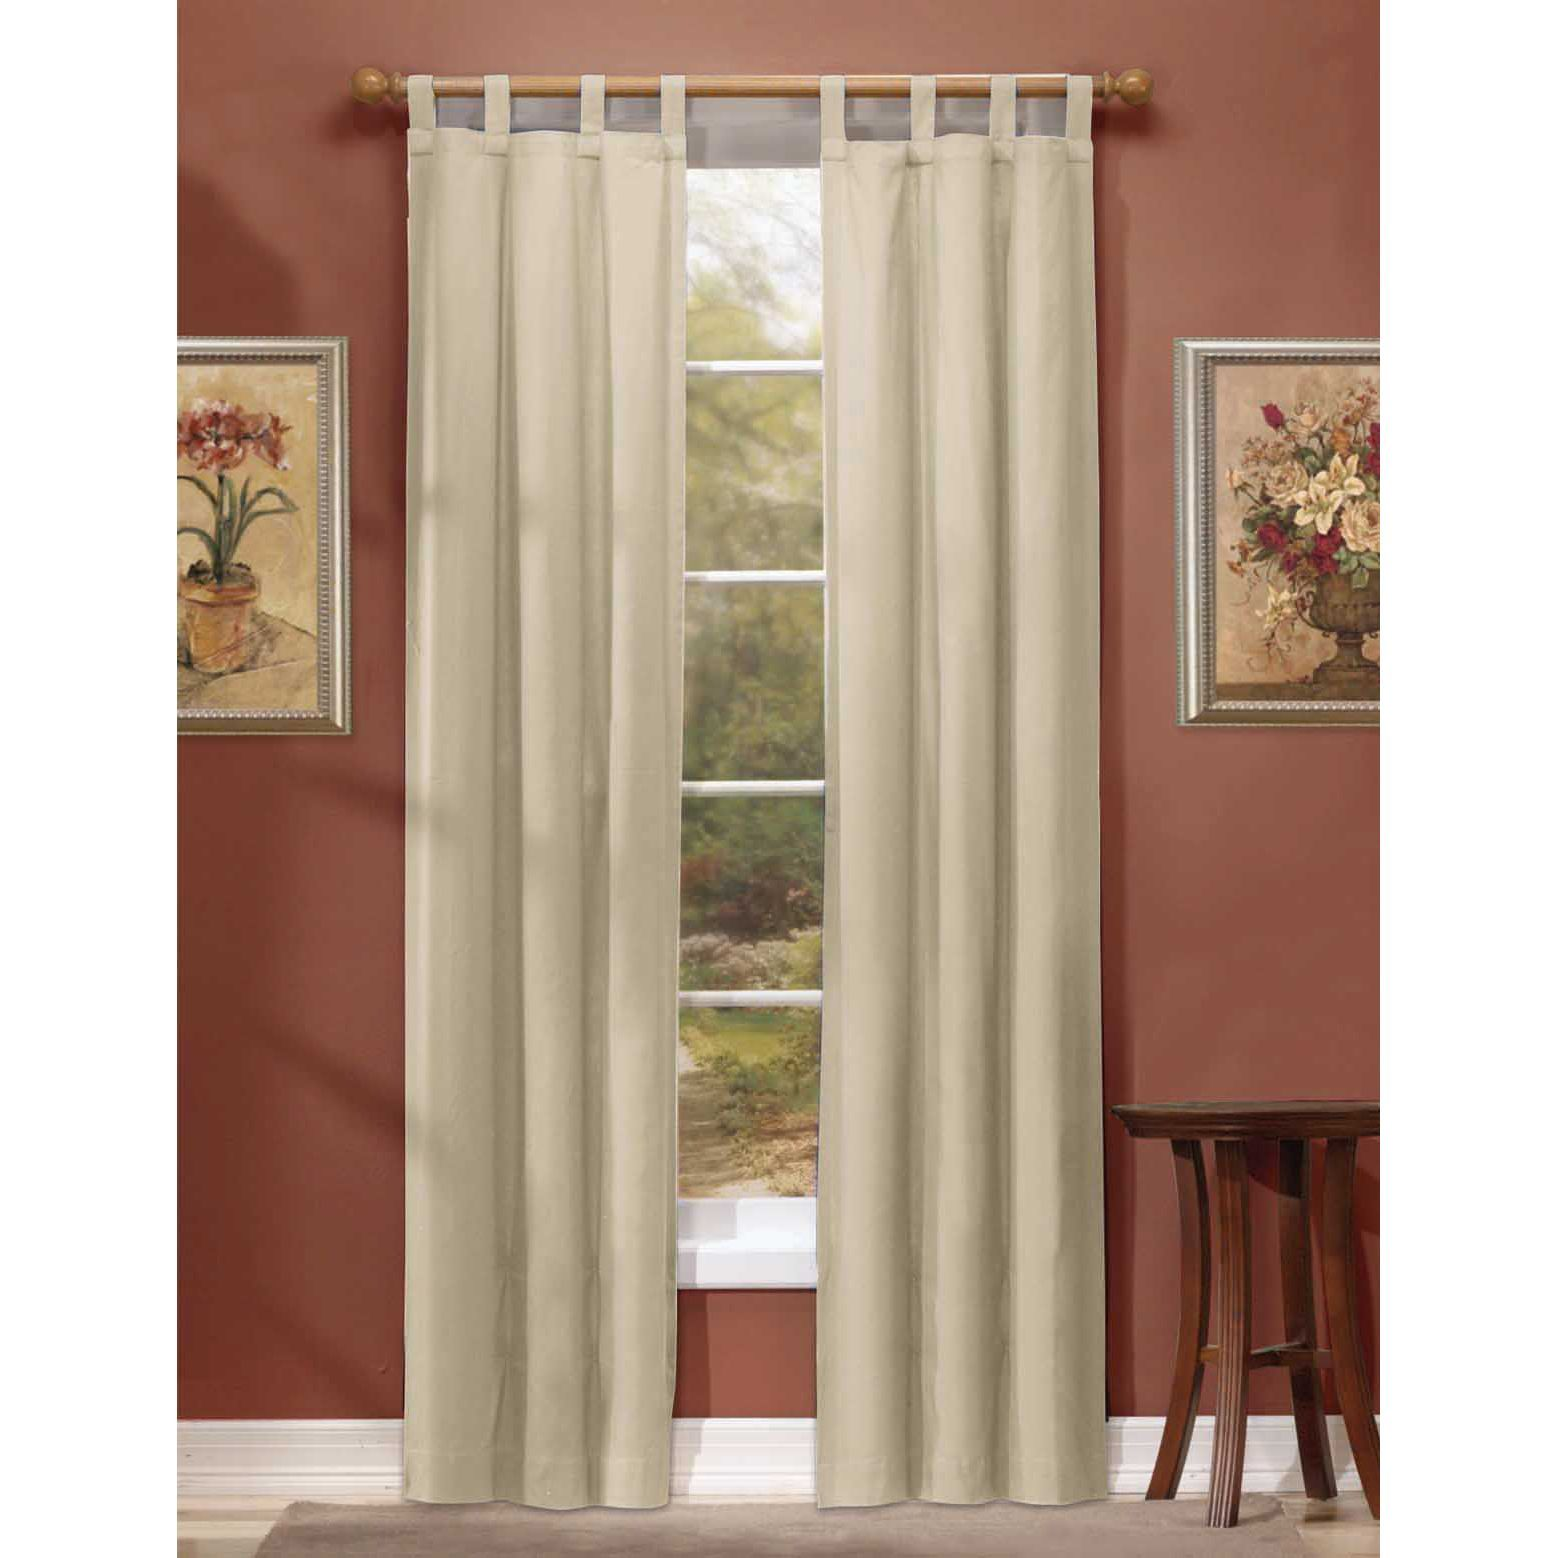 curtains pencil curtain cali pleat lined blue louisiana blackout thermal